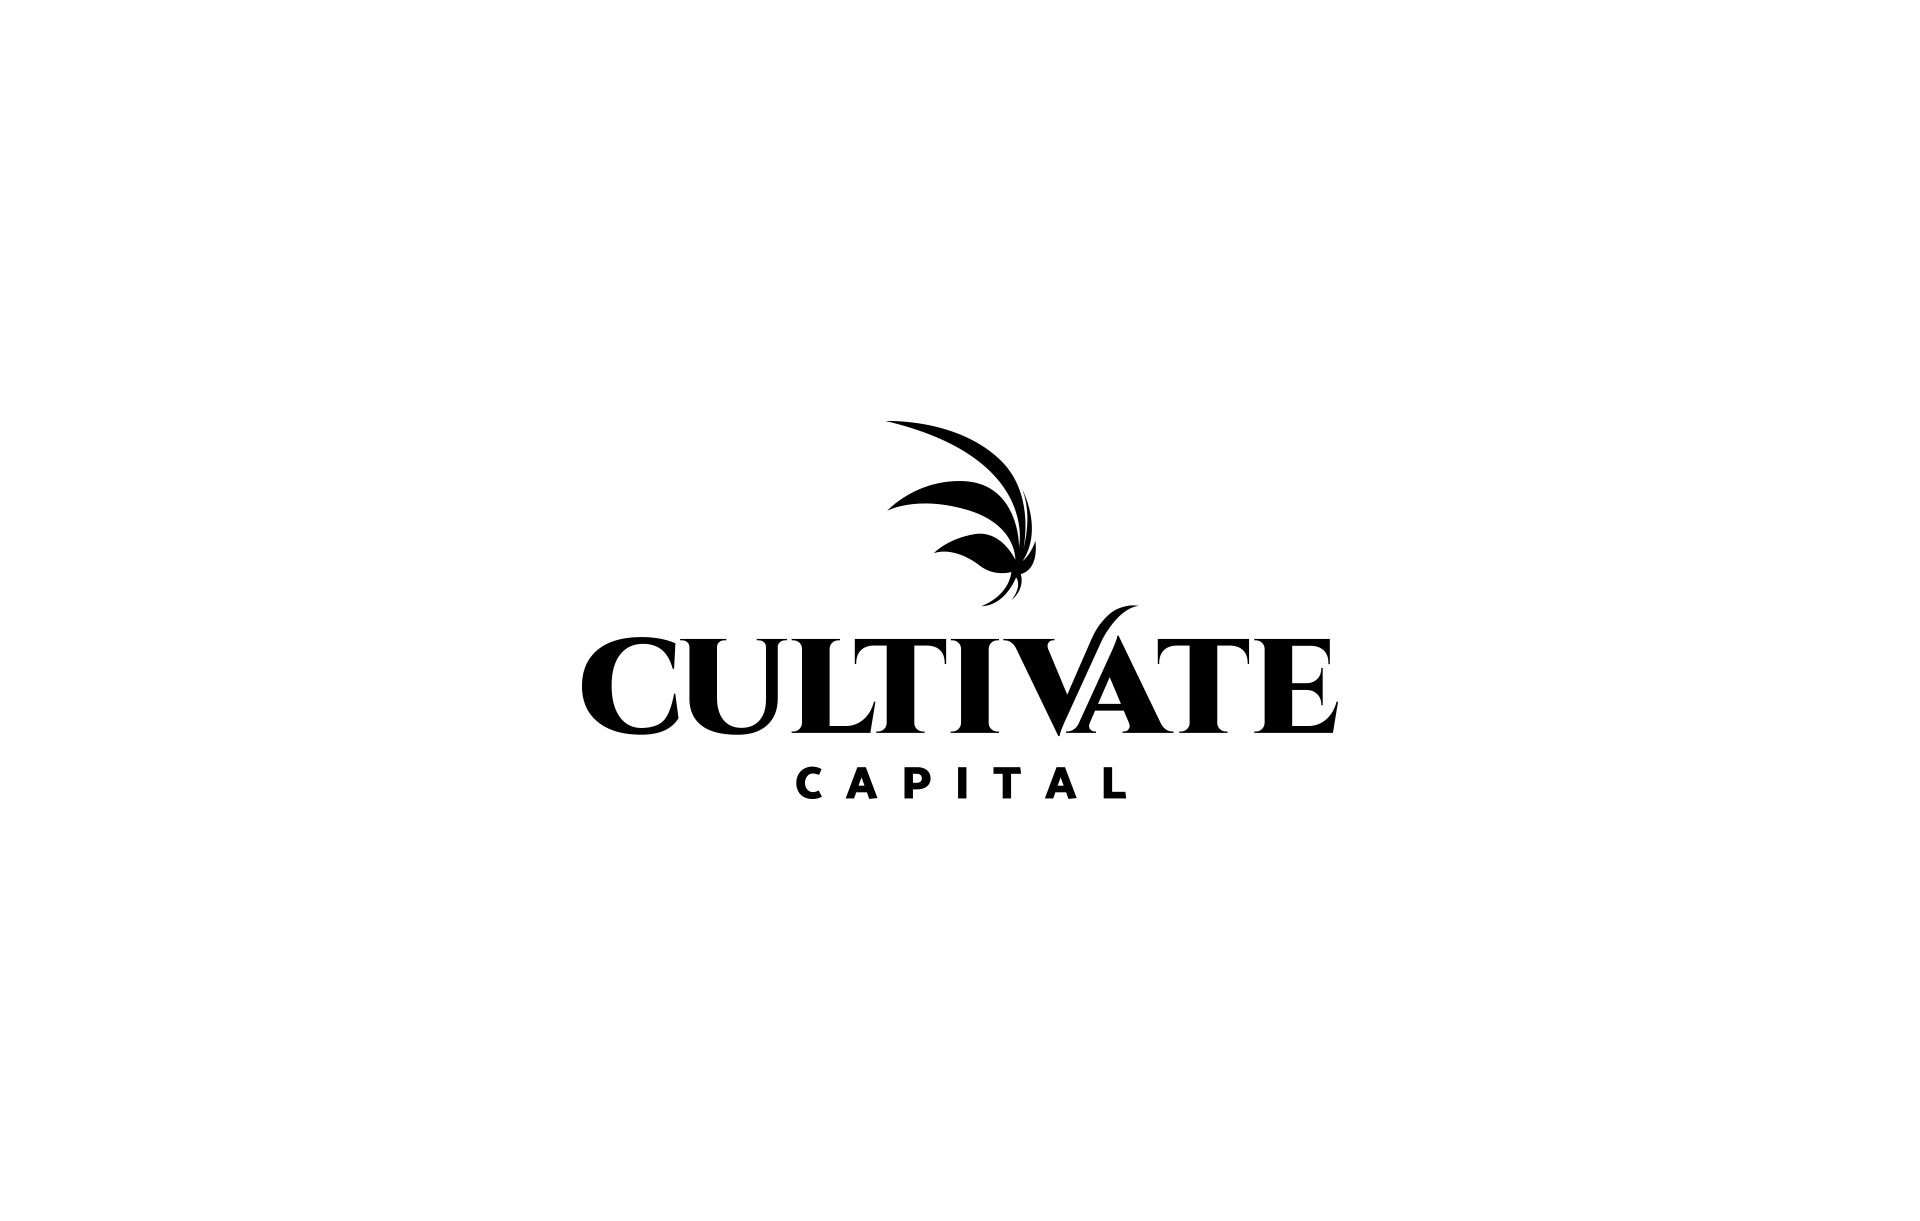 Cultivate Capital Logo Design By Scott Luscombe